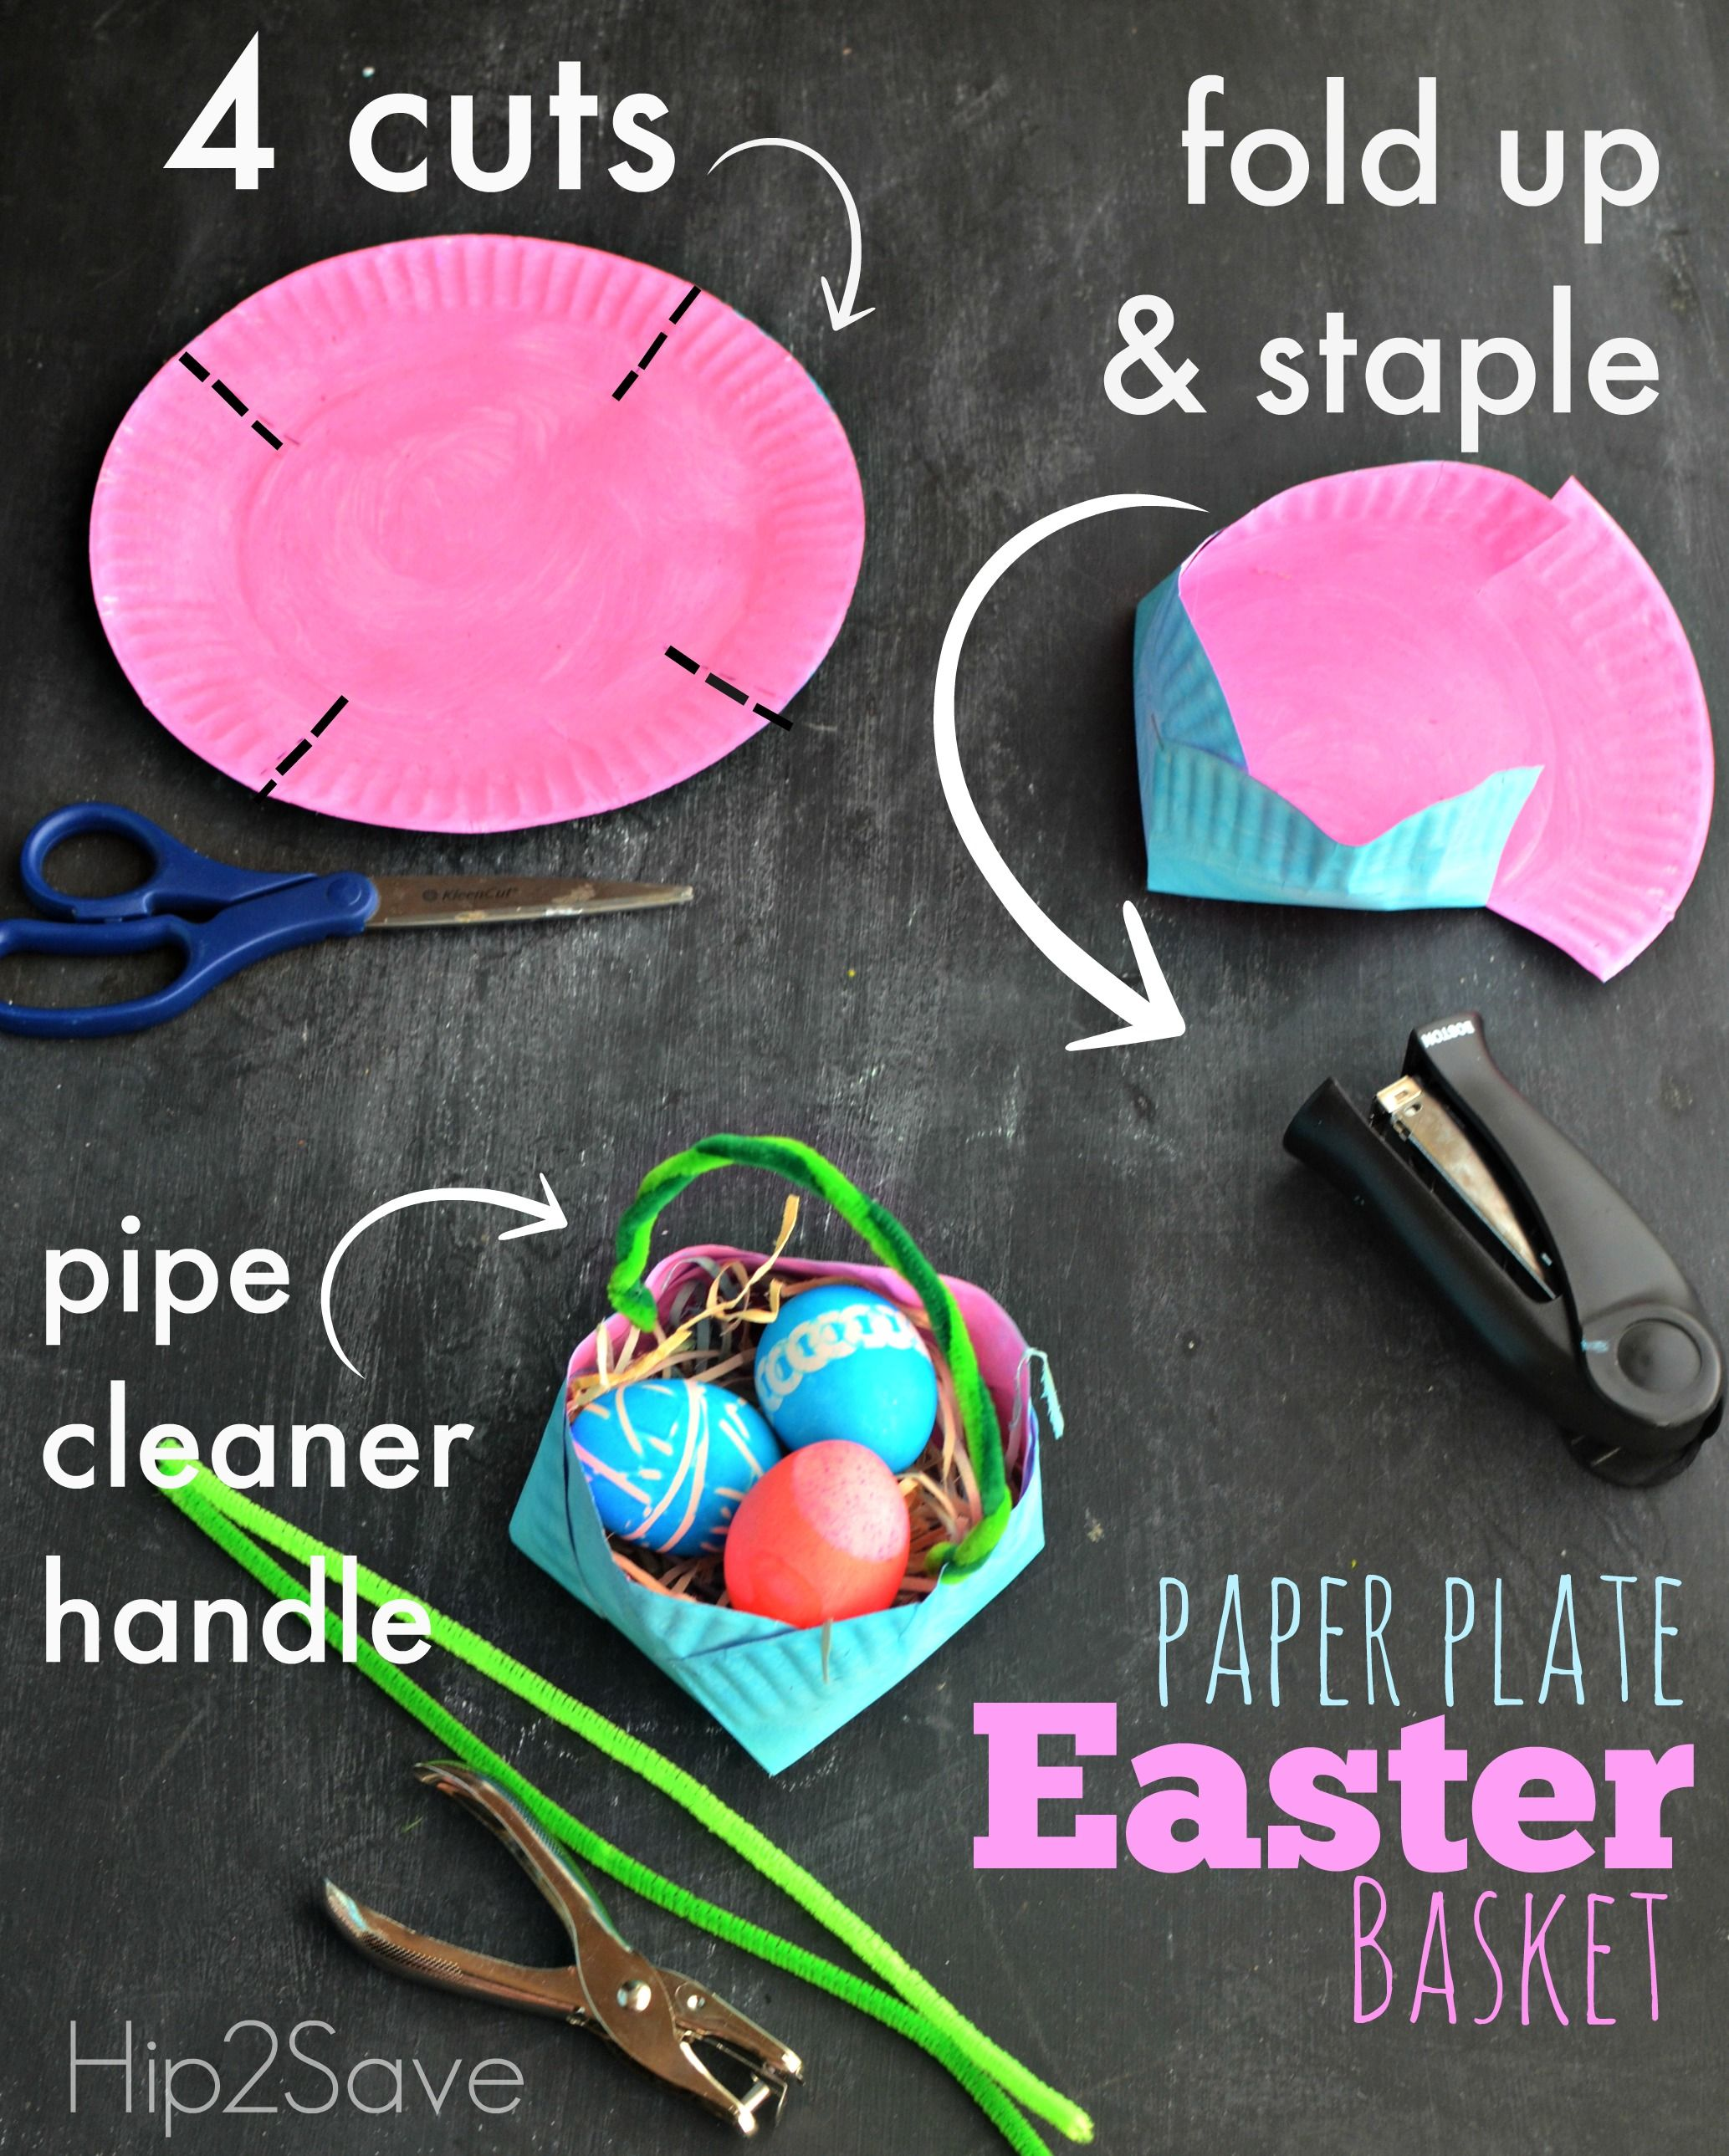 Homemade Paper Plate Easter Basket  sc 1 st  Pinterest & Homemade Paper Plate Easter Basket | Easter baskets Easter and ...